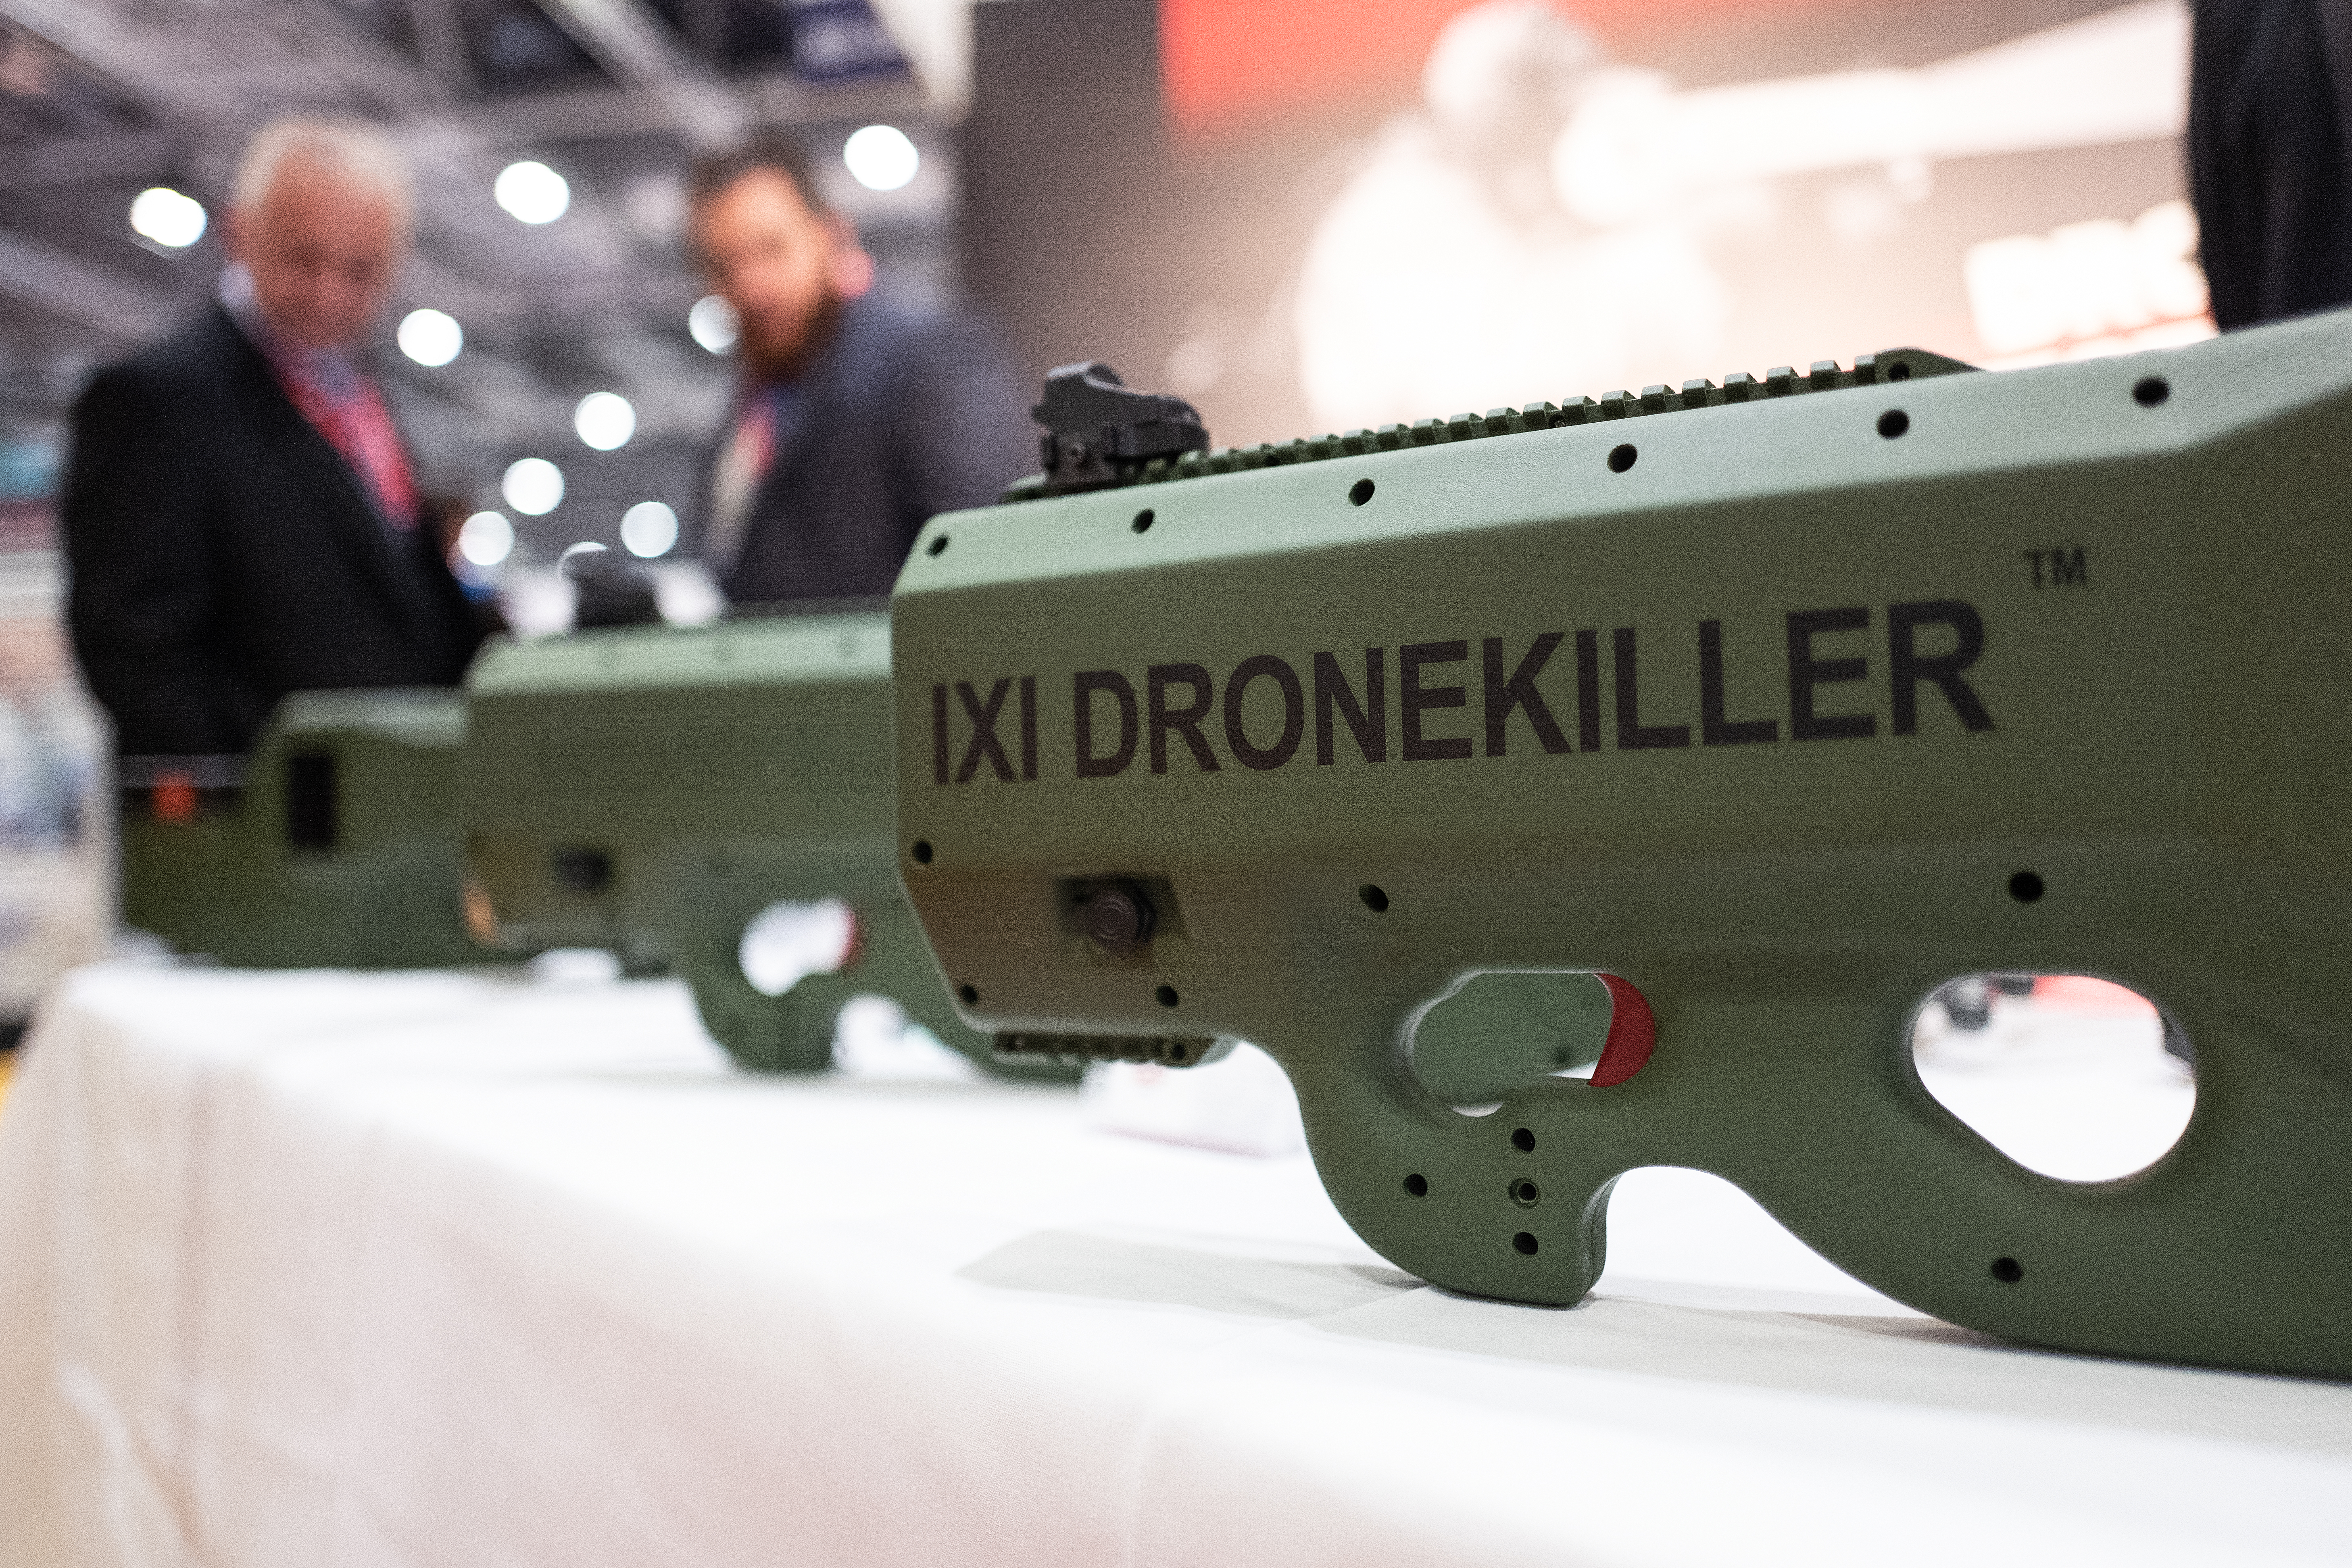 On the opening day of the DSEI arms fair, delegates look at the IXI Dronekiller system. (Leon Neal/Getty Images)